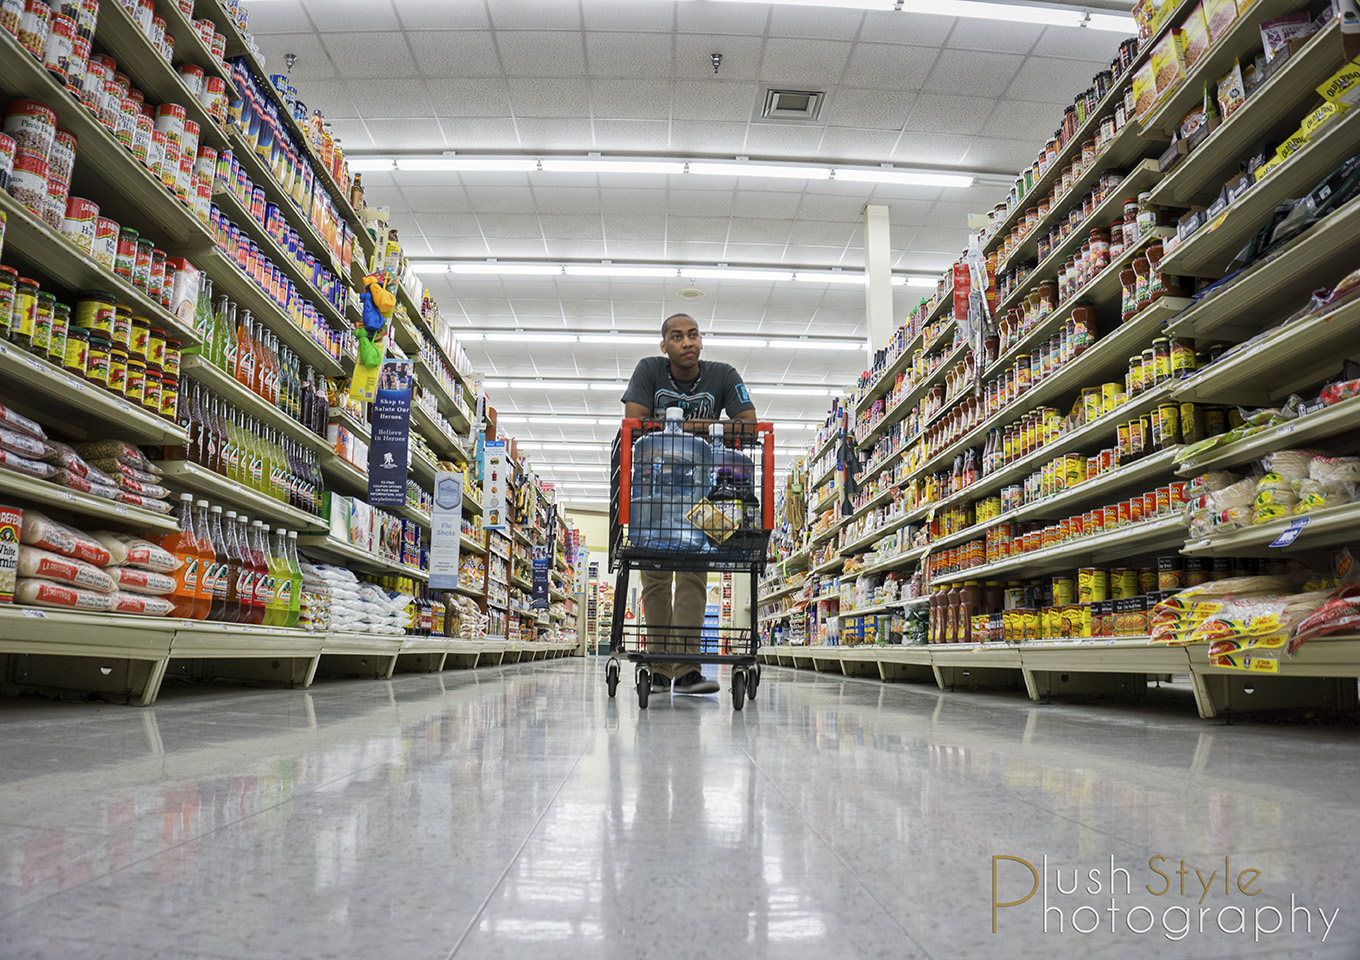 push cart in grocery store image